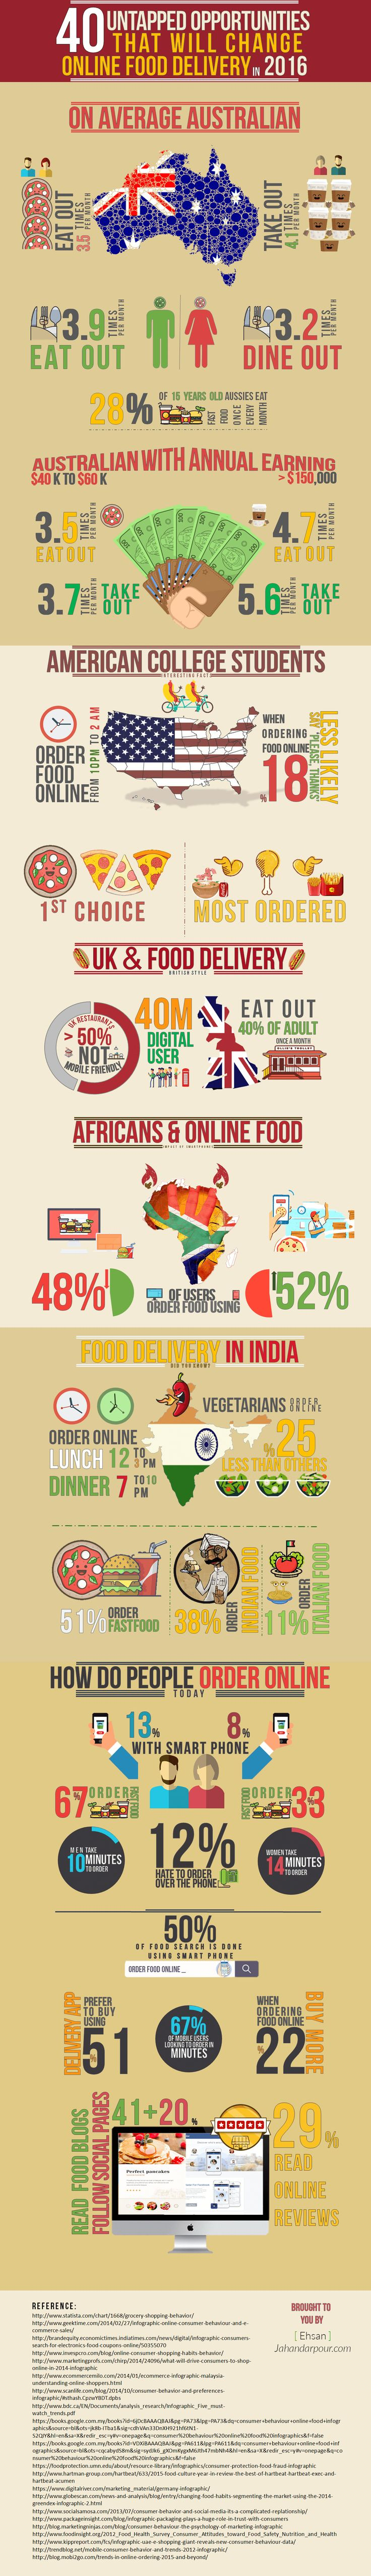 40 Mind Blowing 2016 Facts About How People Use Food Delivery And Order Food Online In 2016